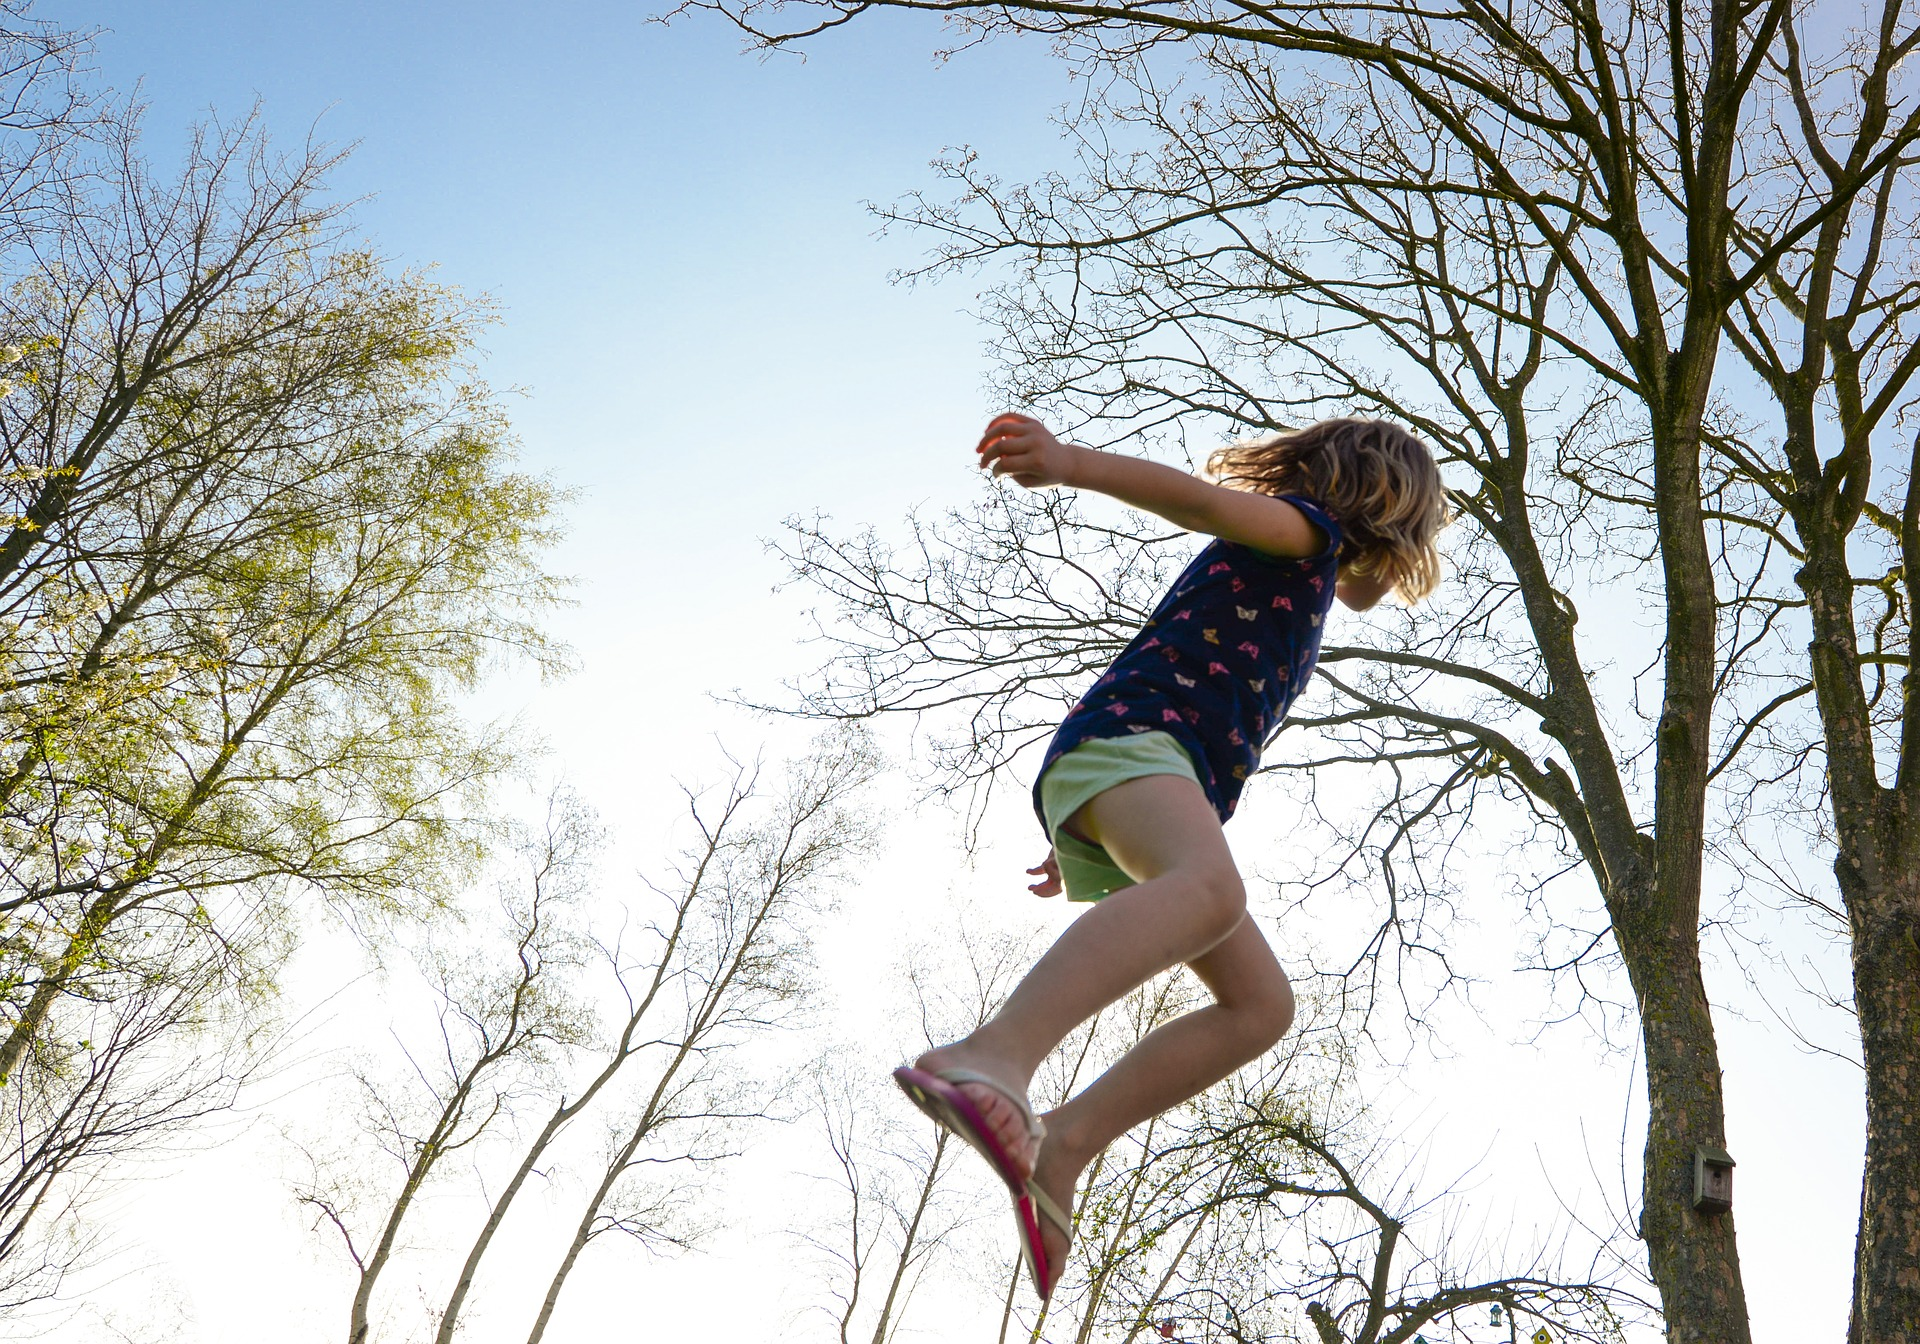 girls jumping on trampoline to improve her mental wellbeing with exercise